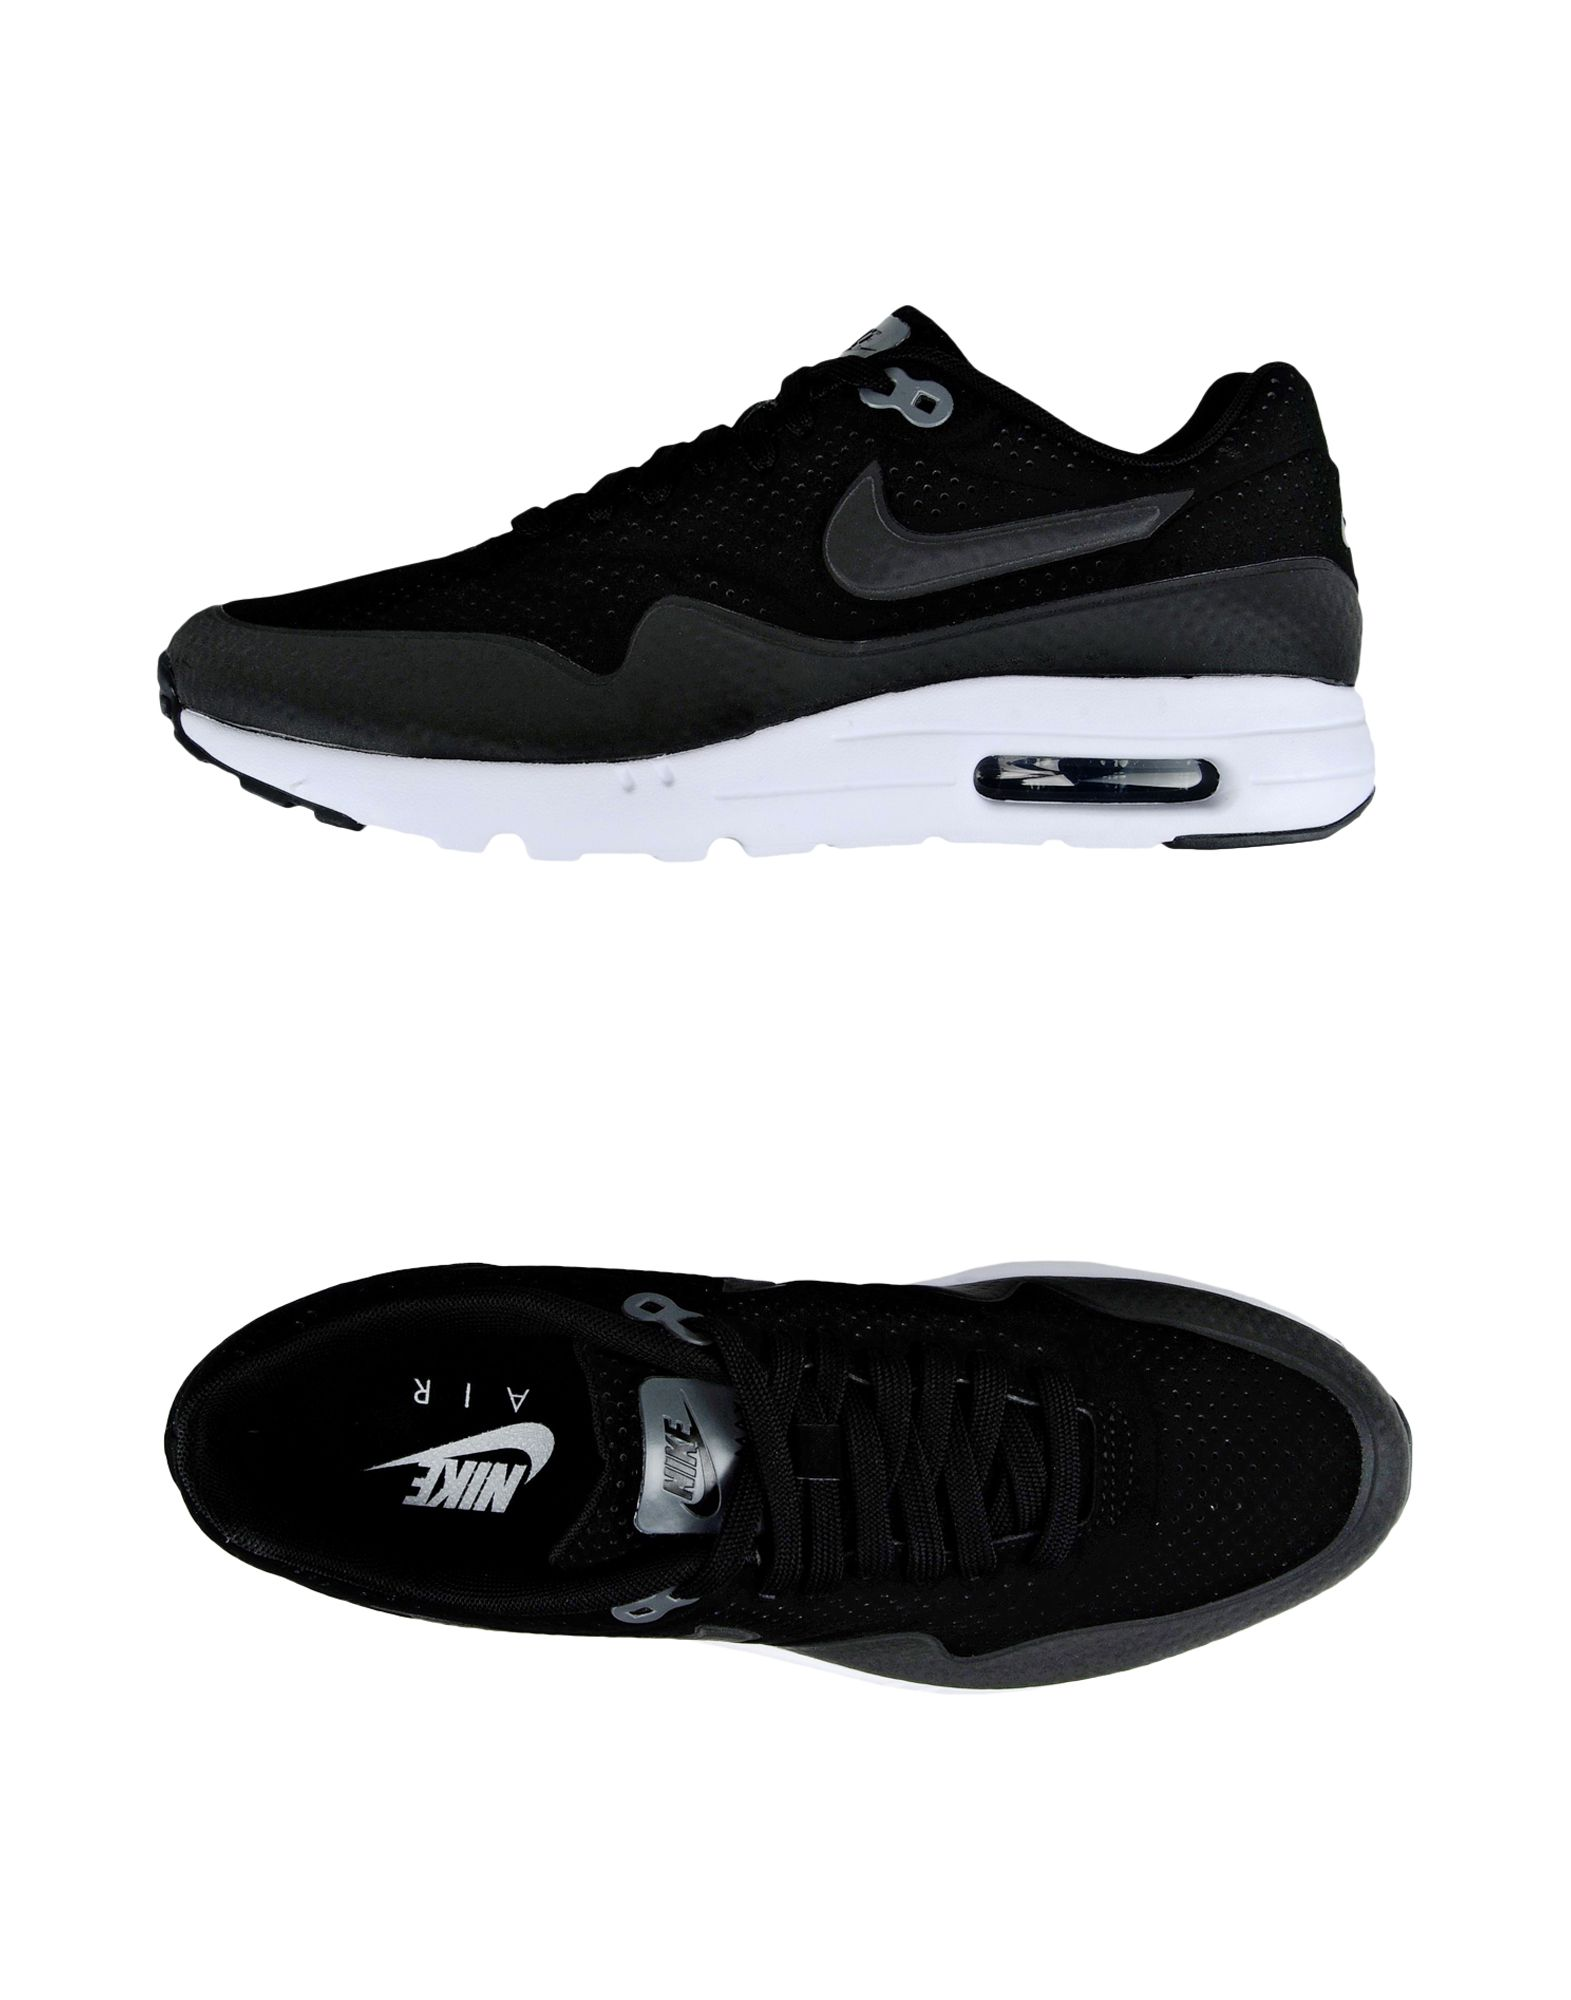 Nike  Air Max Sneakers 1 Ultra Moire - Sneakers Max - Men Nike Sneakers online on  United Kingdom - 44841428NL a385a2